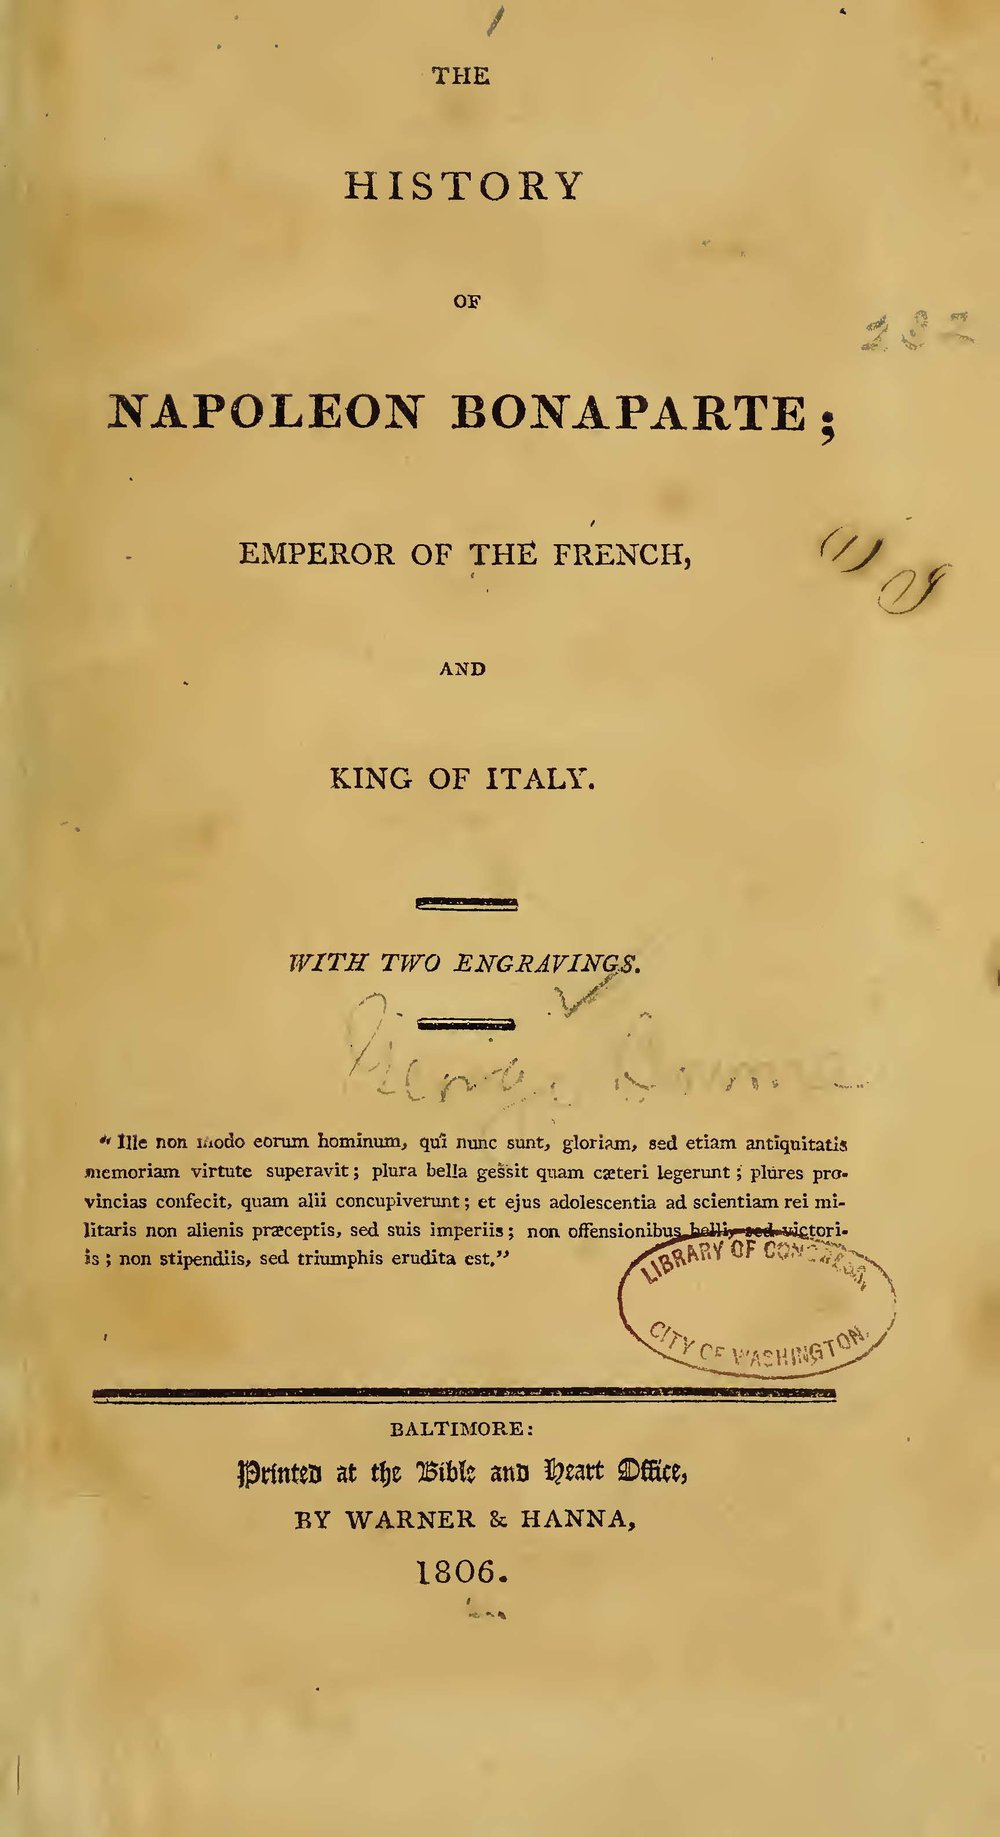 Bourne, George, The History of Napoleon Bonaparte Title Page.jpg